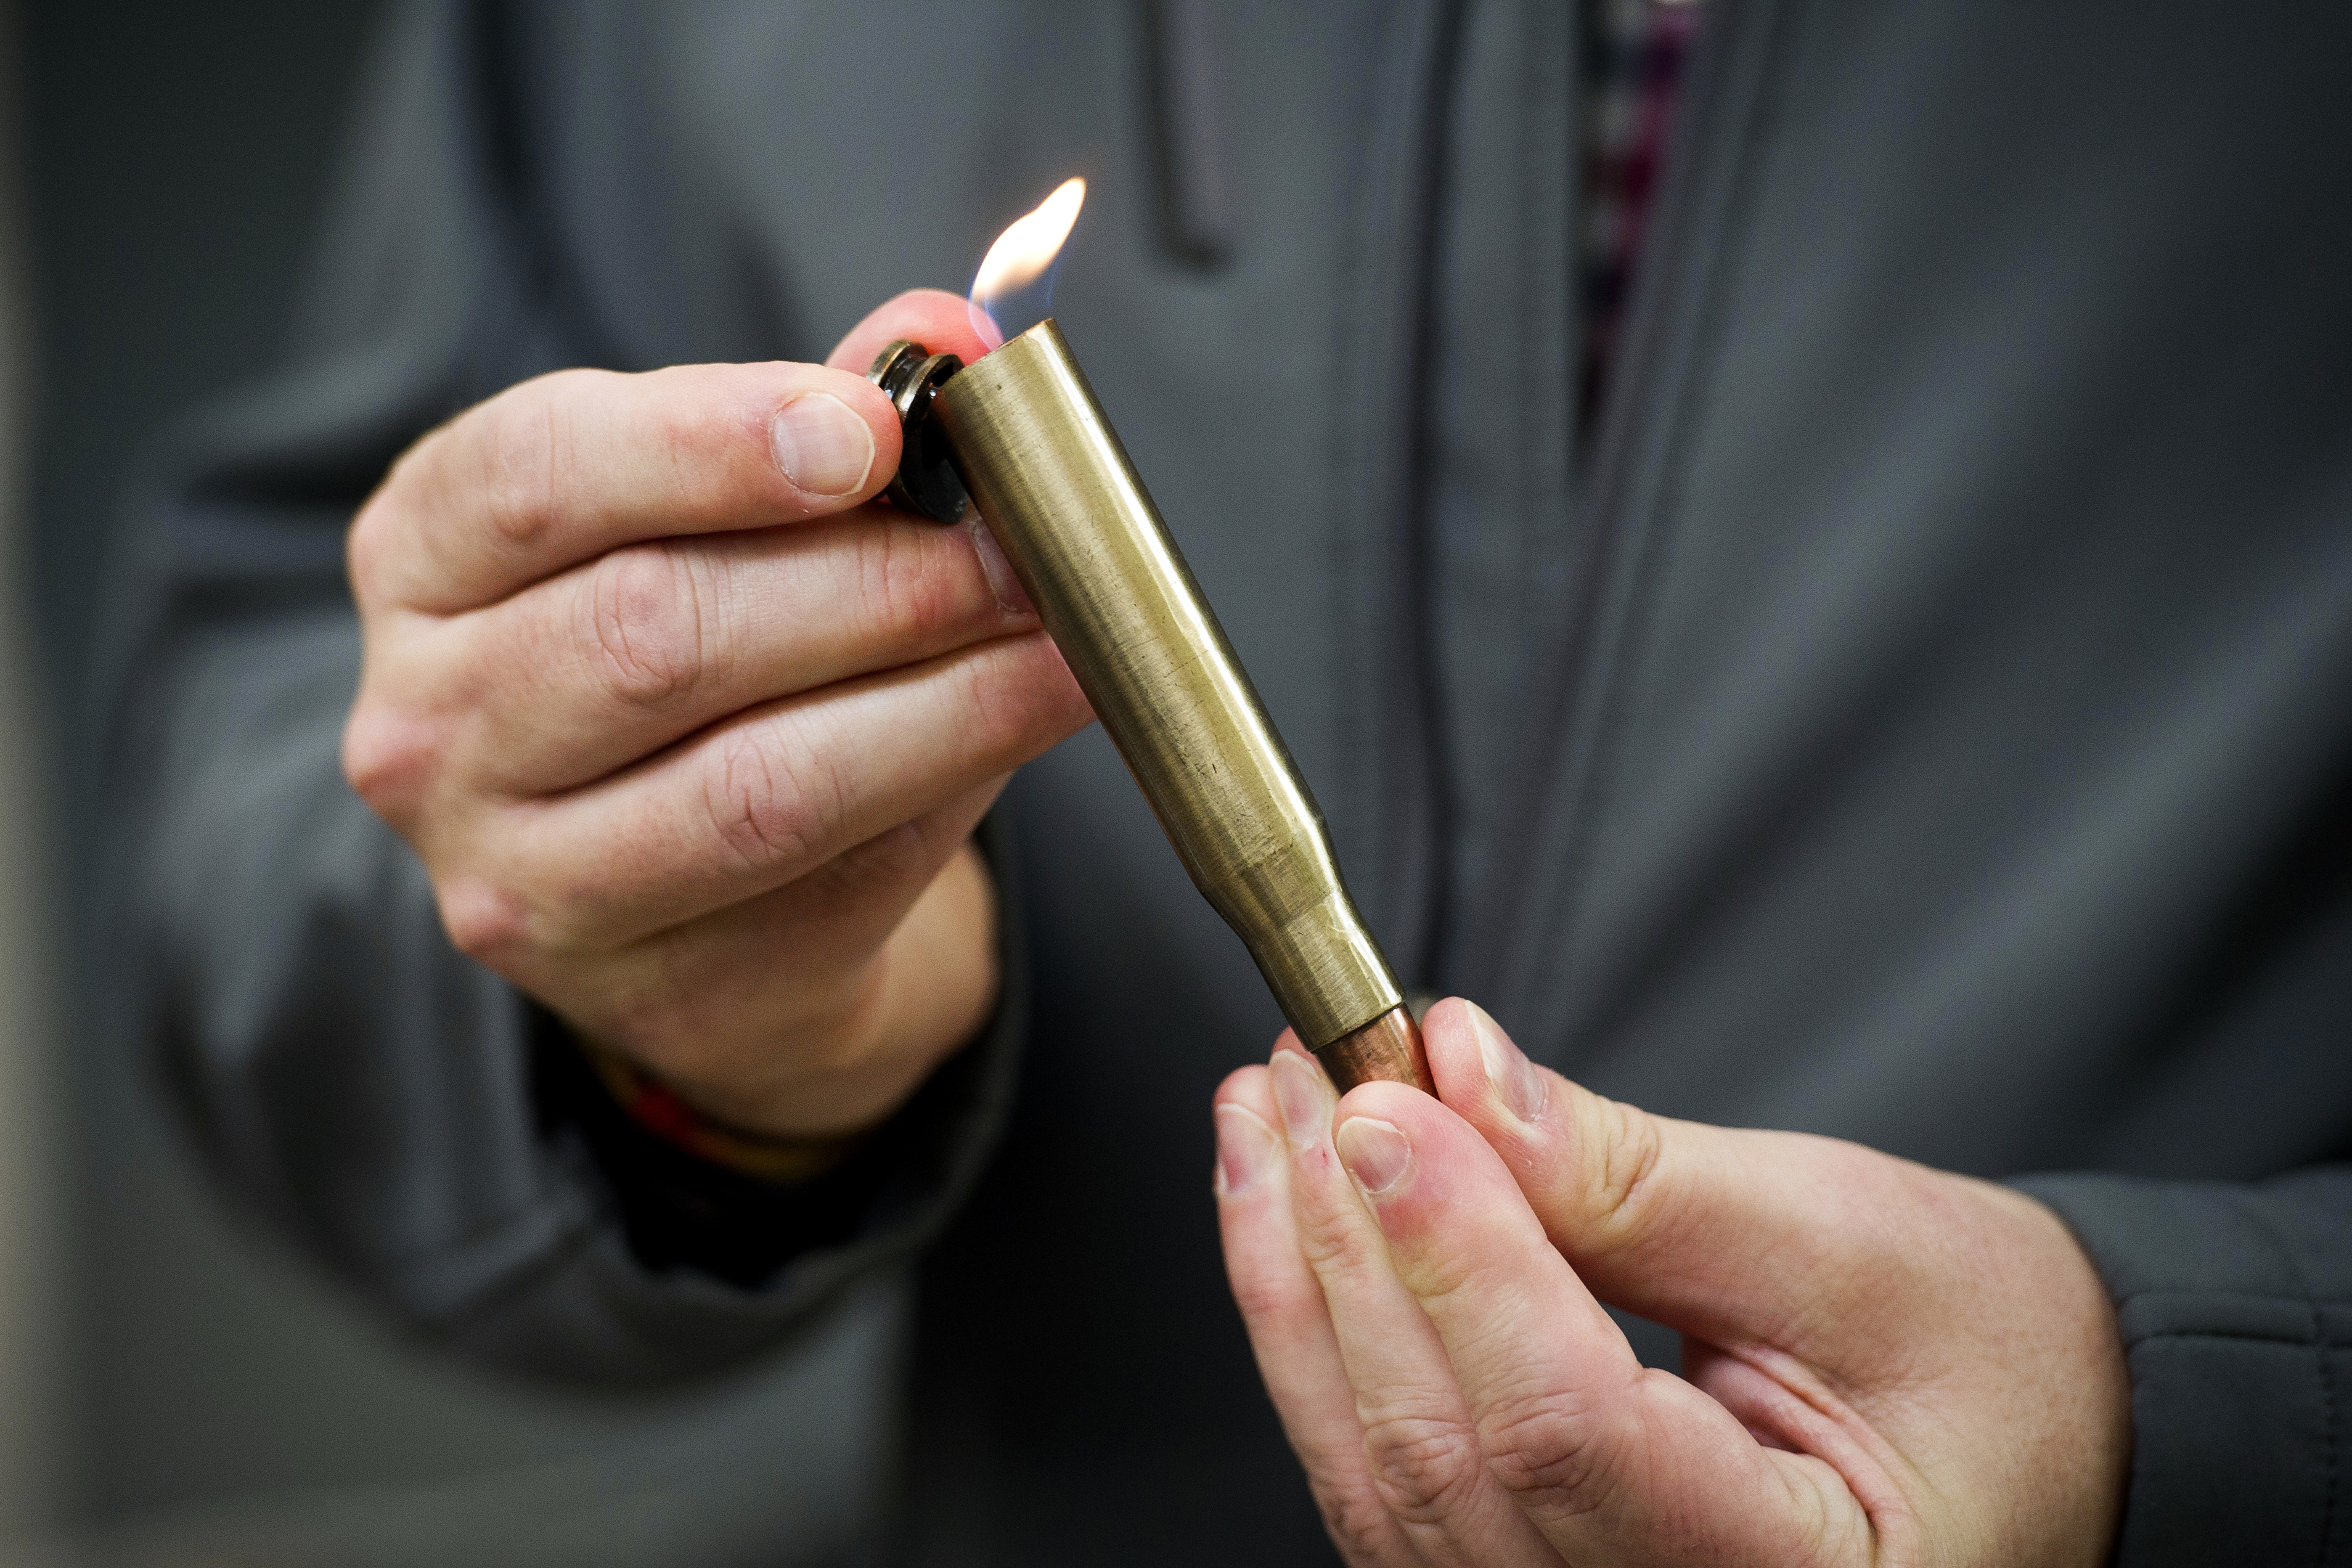 David Johnston, TSA's social media director, displays a lighter mounted inside of a bullet casing which was confiscated from a passenger at a Transportation Security Administration (TSA) checkpoint at Dulles International Airport in Dulles, Va., Marc...